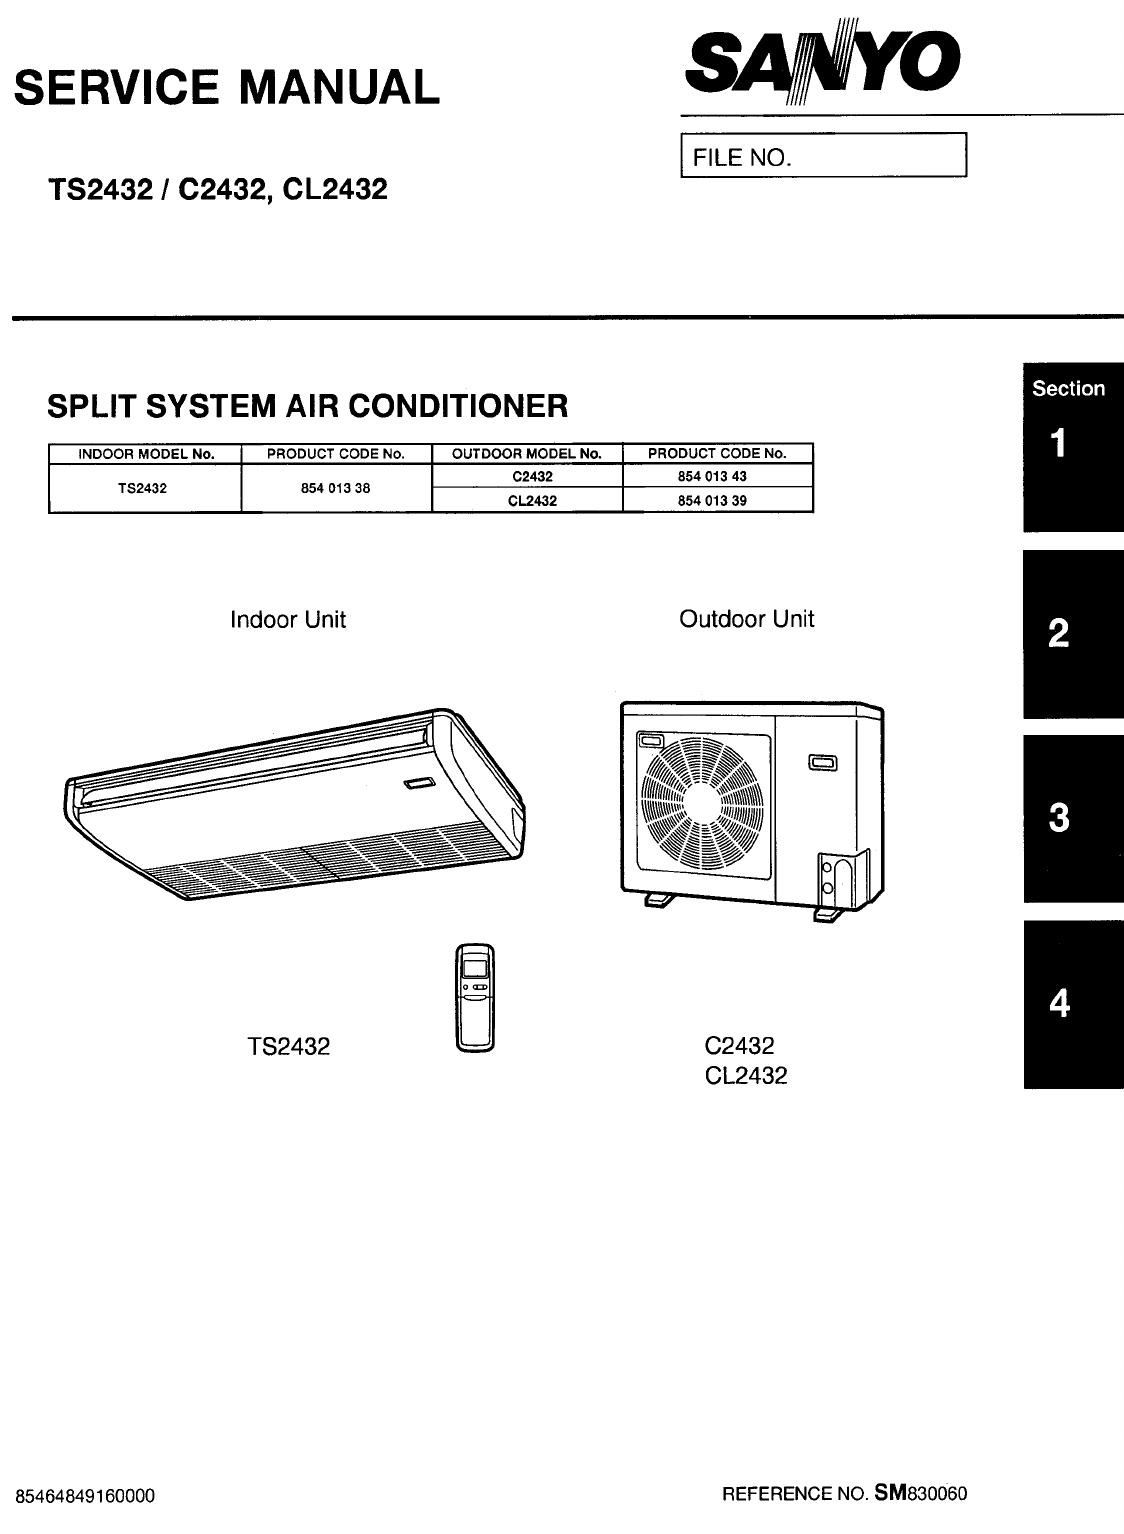 sanyo air conditioner c2432 user guide manualsonline com rh tv manualsonline com sanyo air conditioner manual ks1251 sanyo air conditioning remote control manual